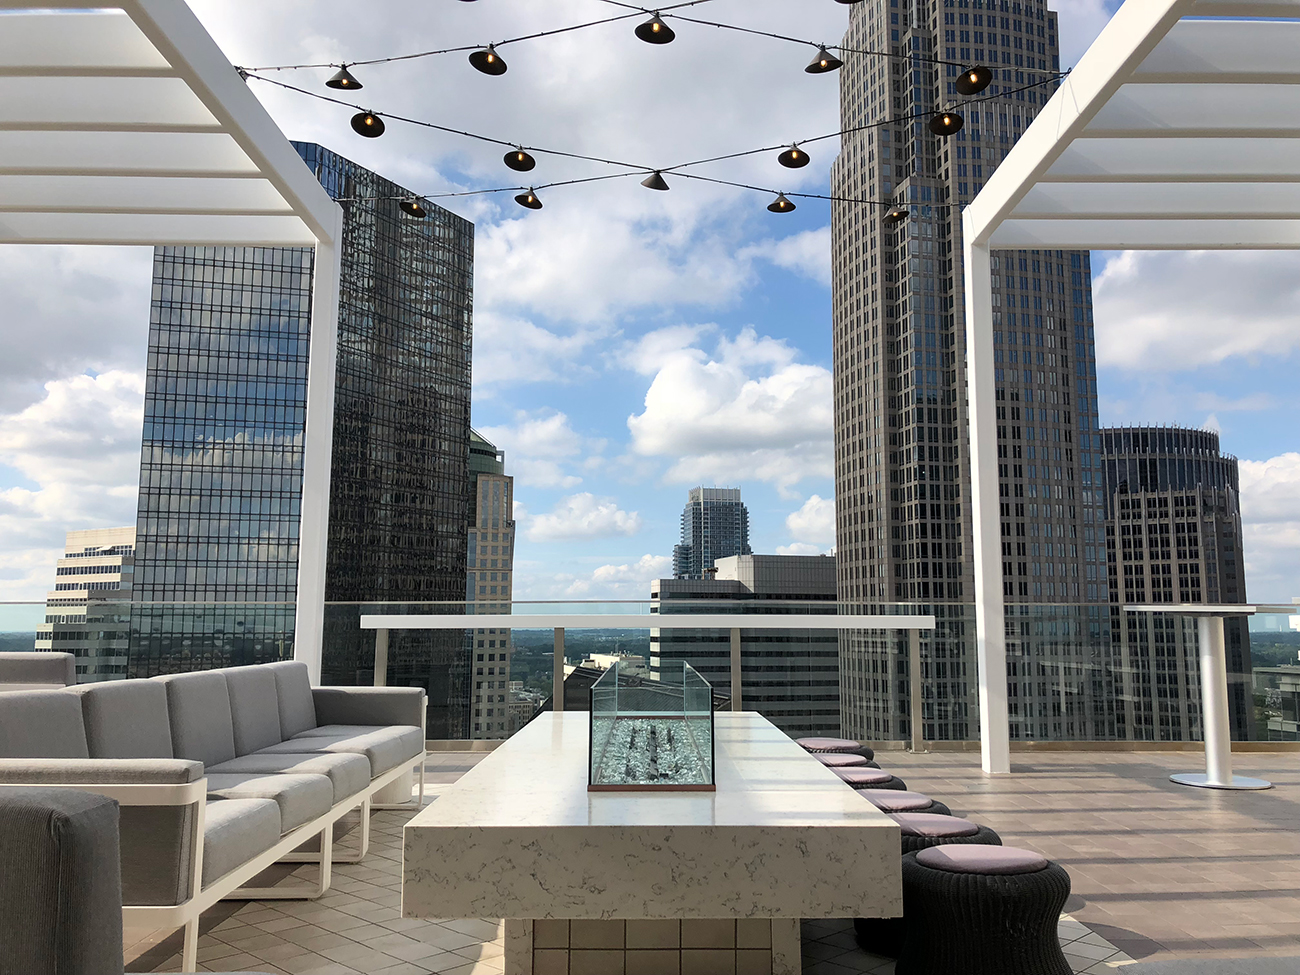 Nuvolé, a swanky rooftop bar and lounge, is now open on the 22nd floor of the new AC Hotel